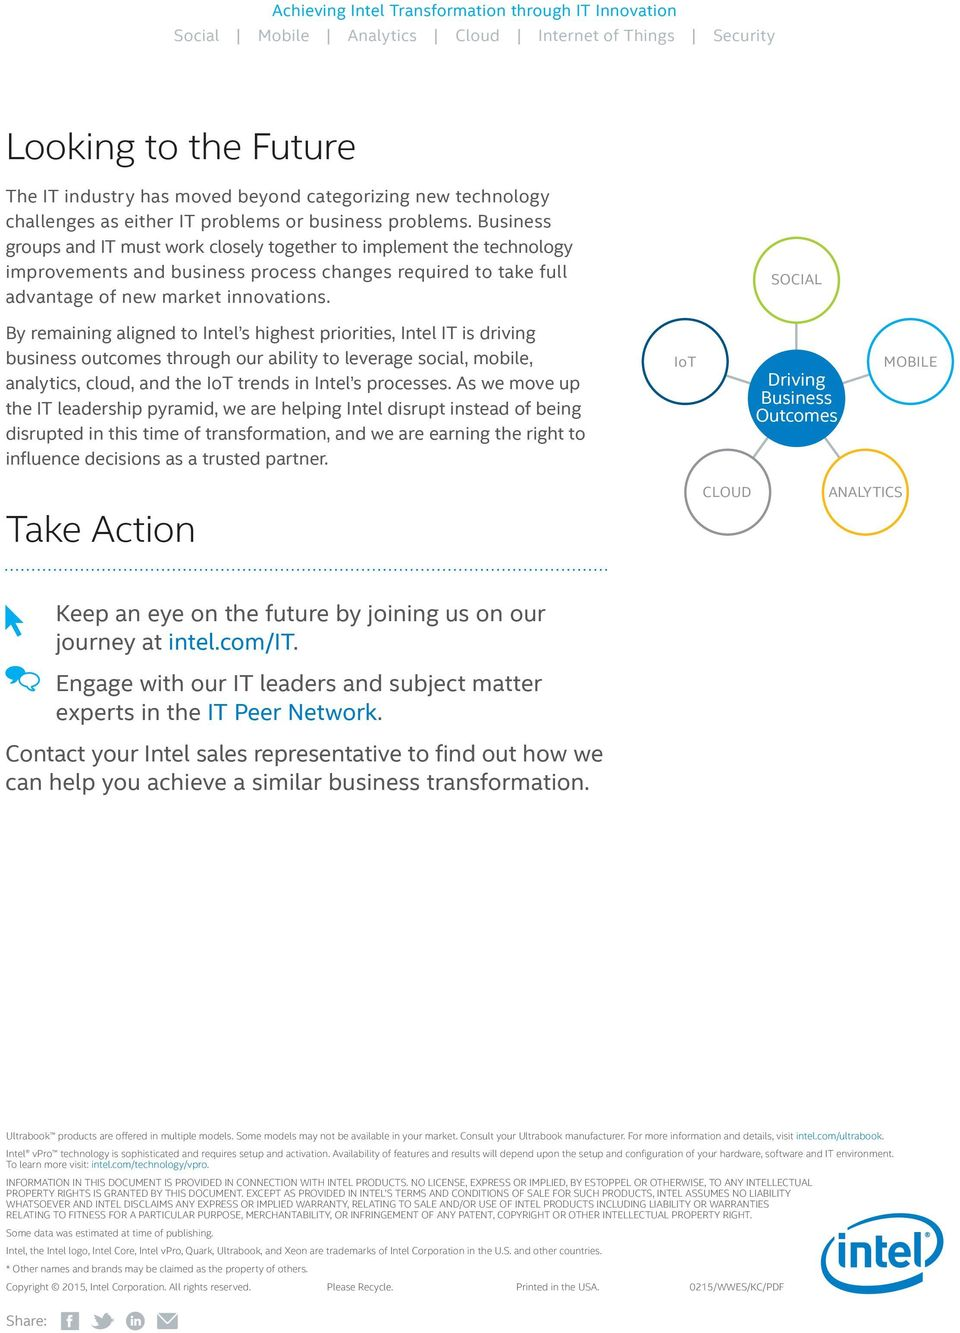 SOCIAL By remaining aligned to Intel s highest priorities, Intel IT is driving business outcomes through our ability to leverage social, mobile, analytics, cloud, and the IoT trends in Intel s